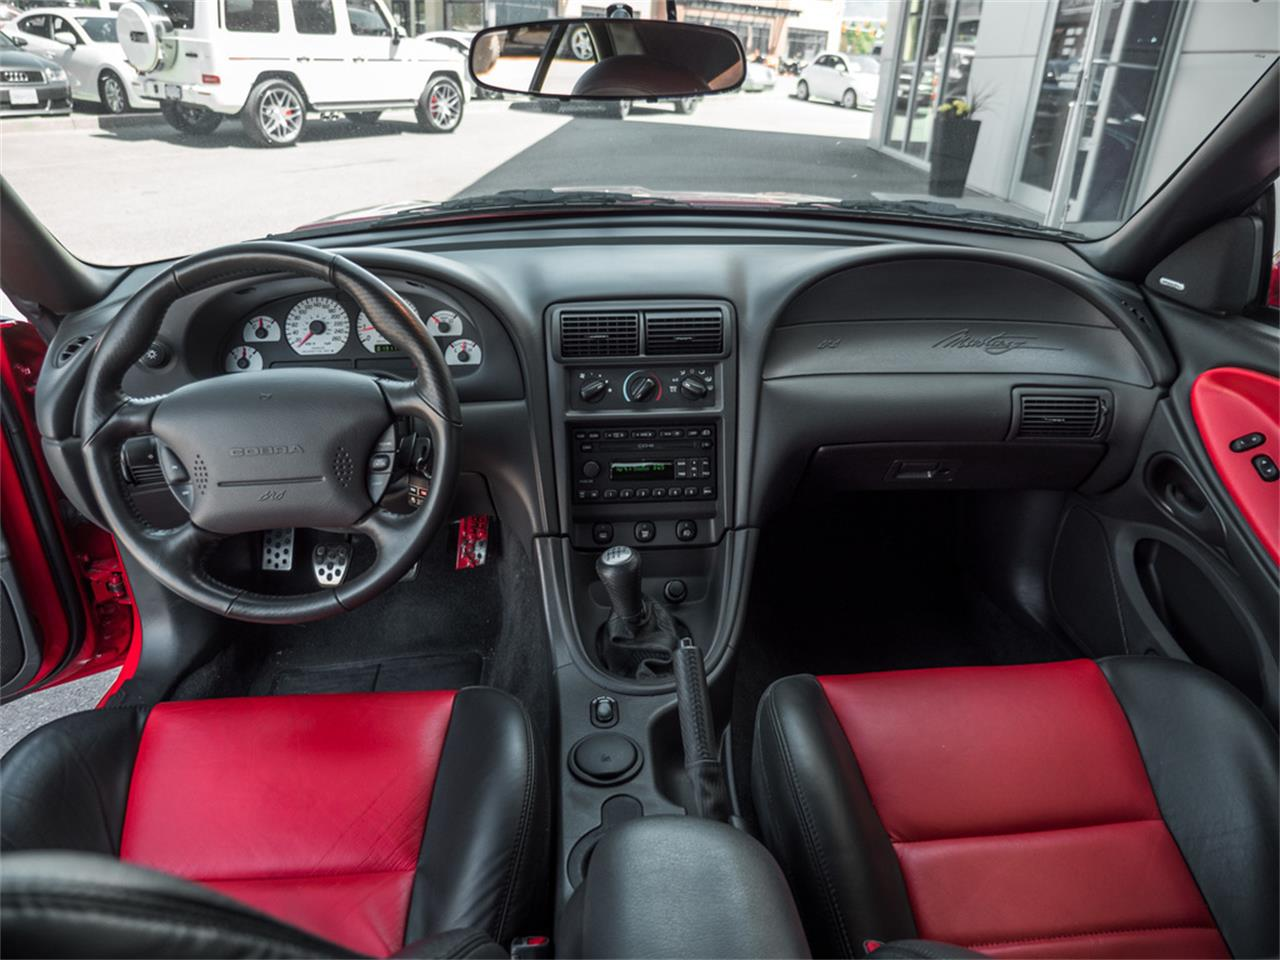 Large Picture of 2003 Ford Mustang located in British Columbia - $38,185.00 Offered by August Motorcars - Q9QR